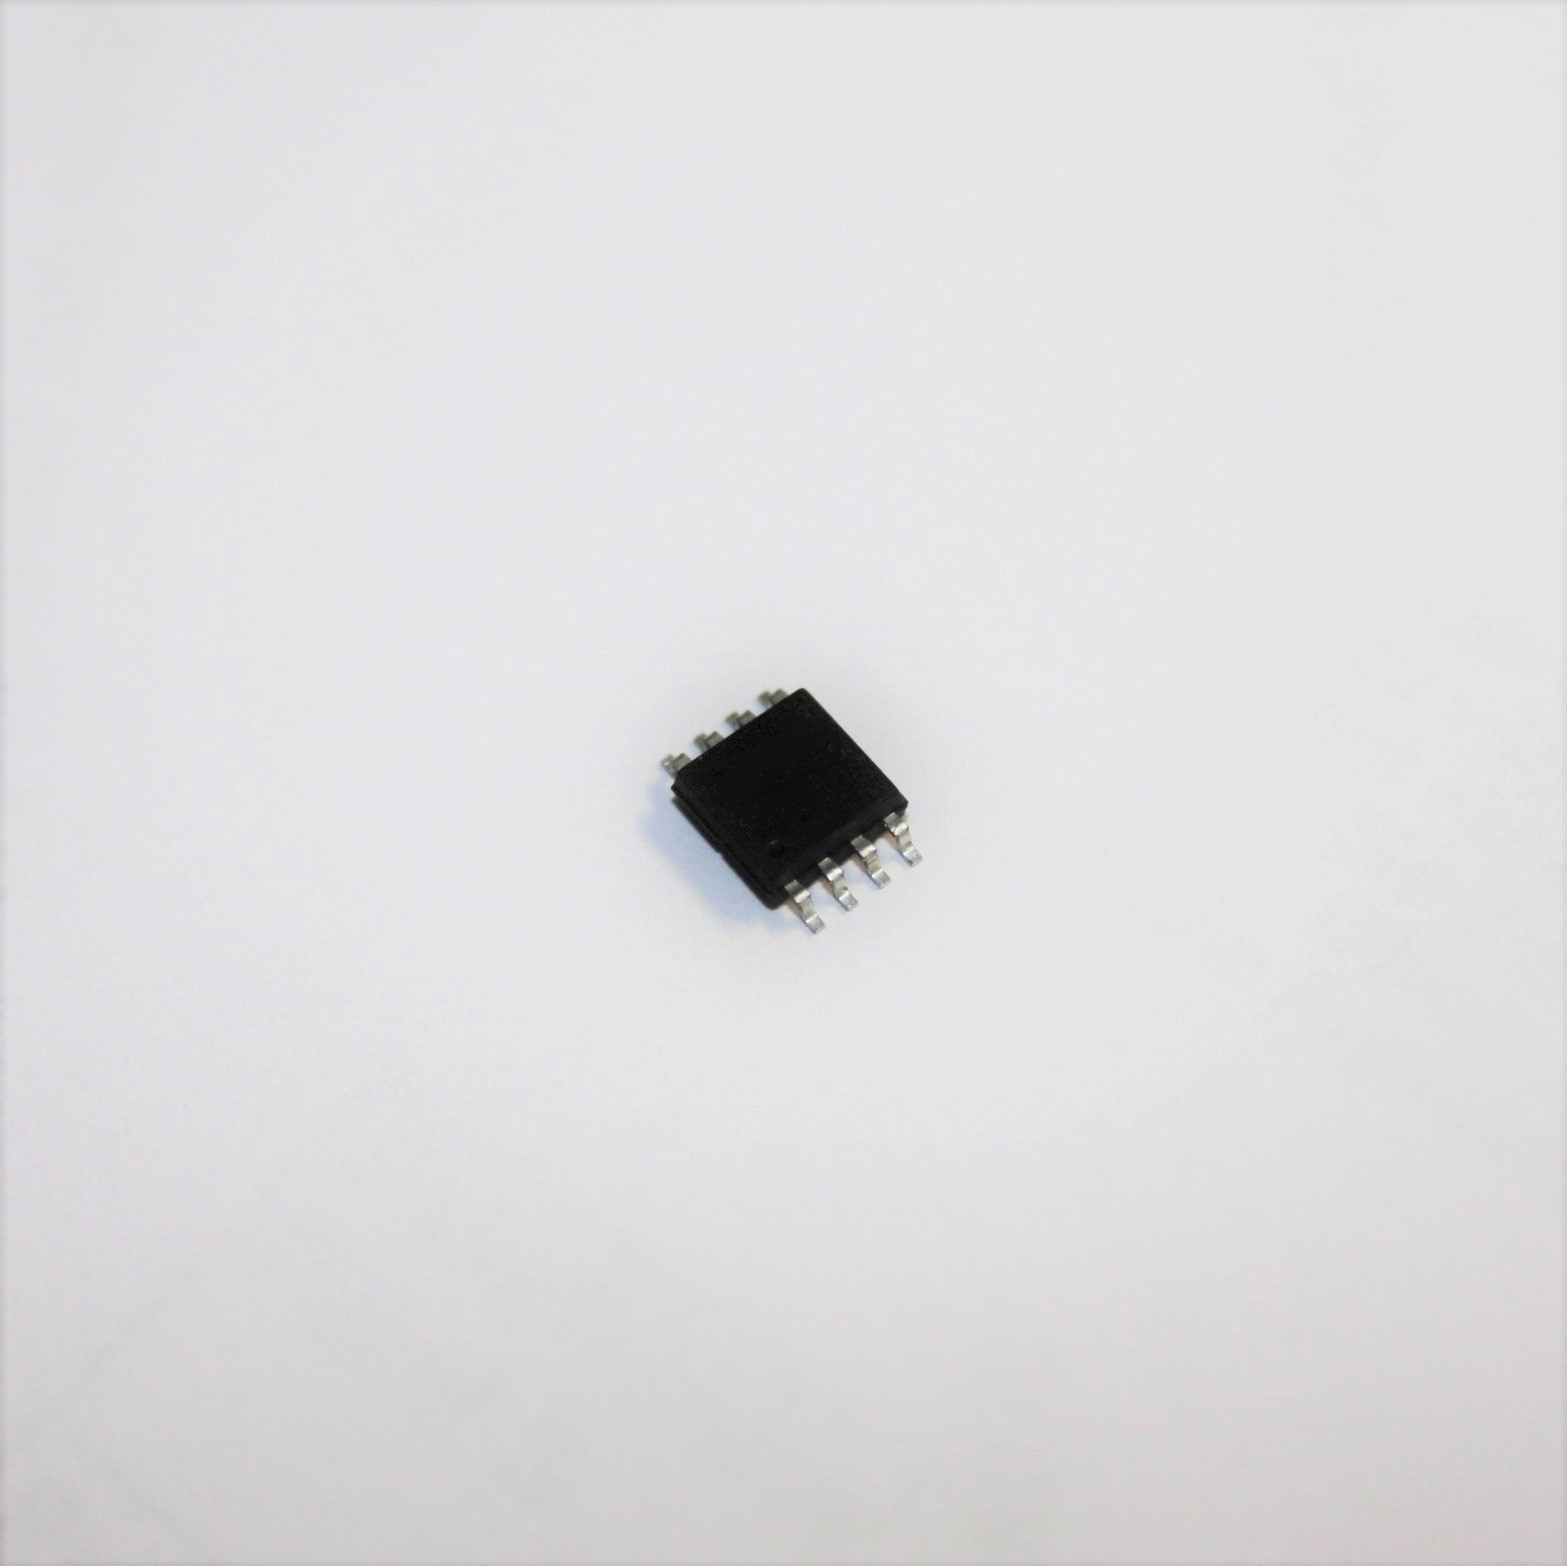 MXIC MX 25L3206E M2I-12G, SOIC-8, 32MBit, 4Mb SPI Flash